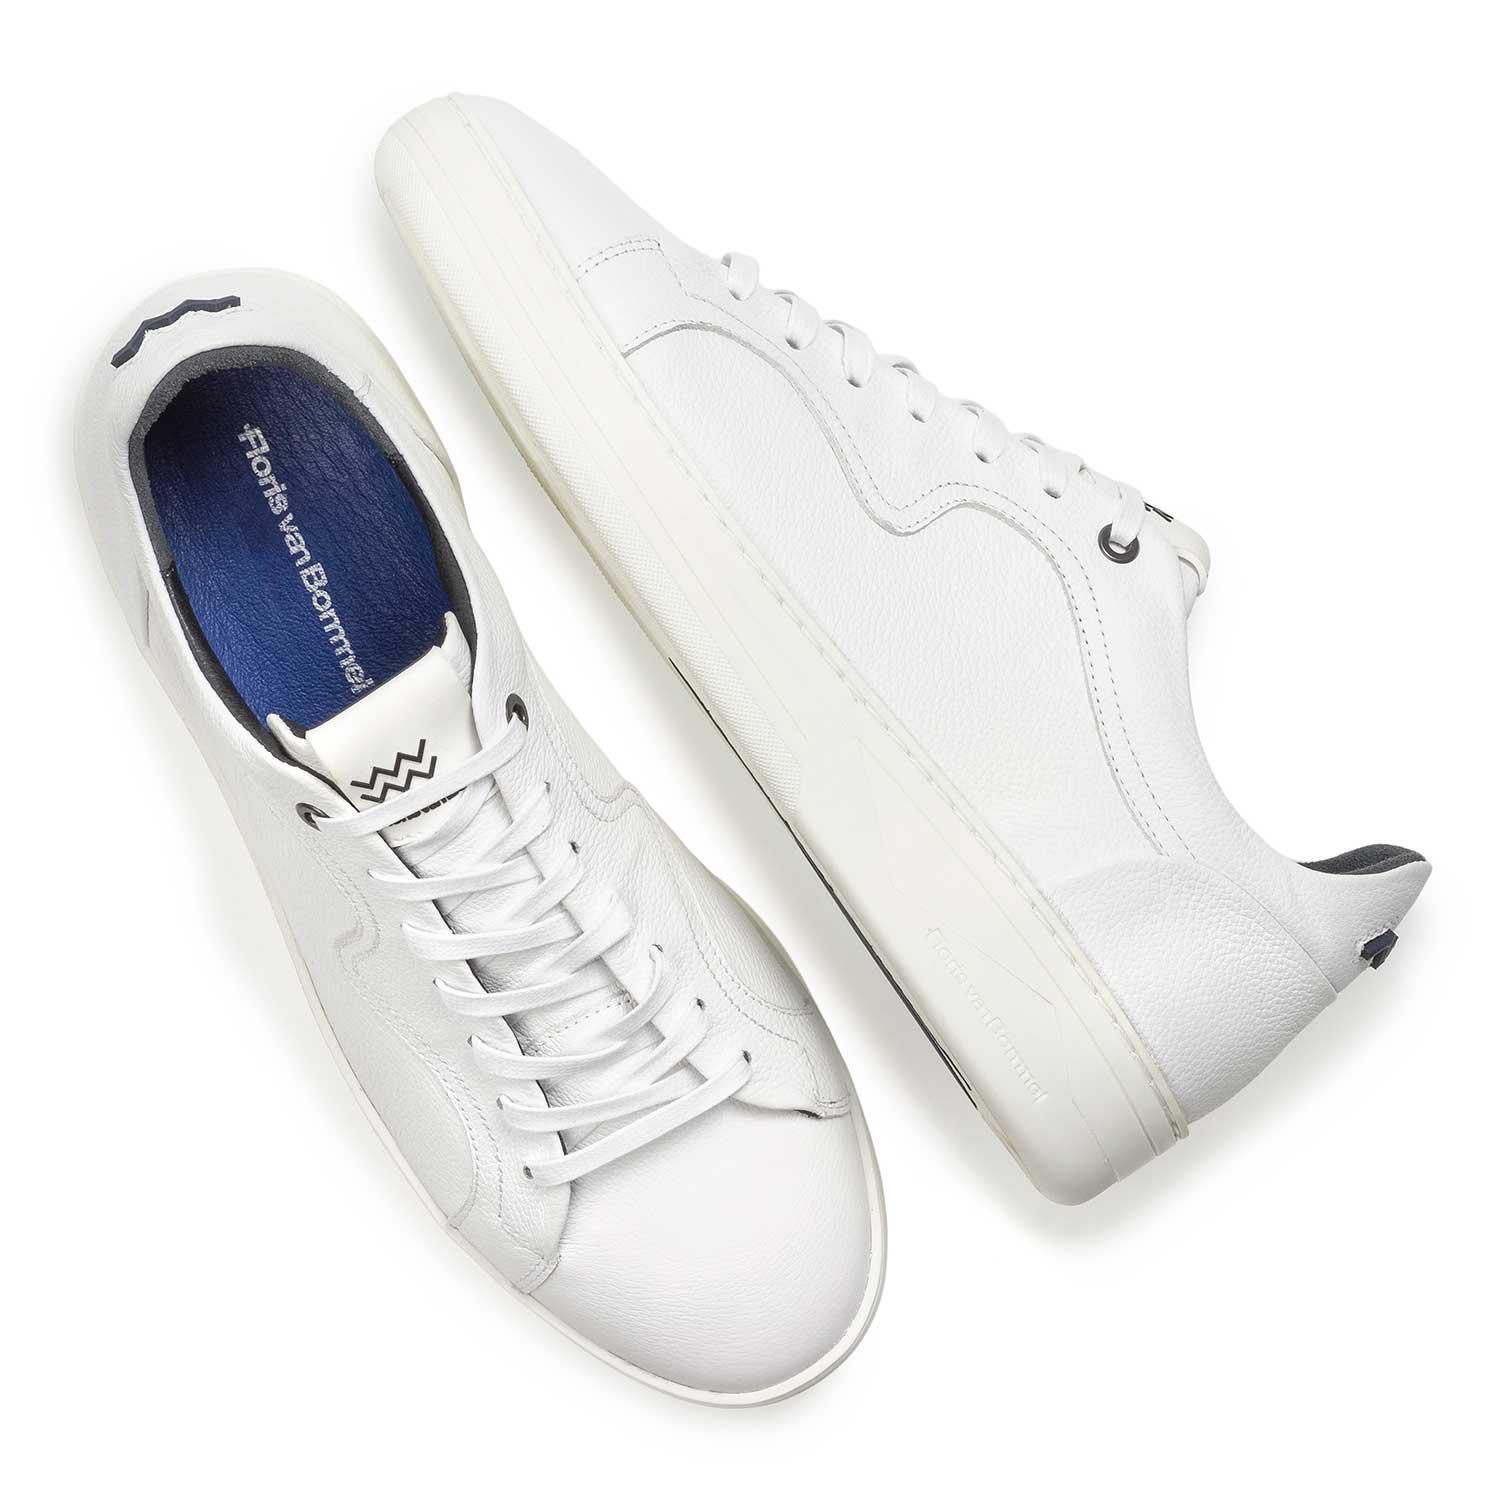 13225/05 - White calf leather sneaker with a subtle structural pattern